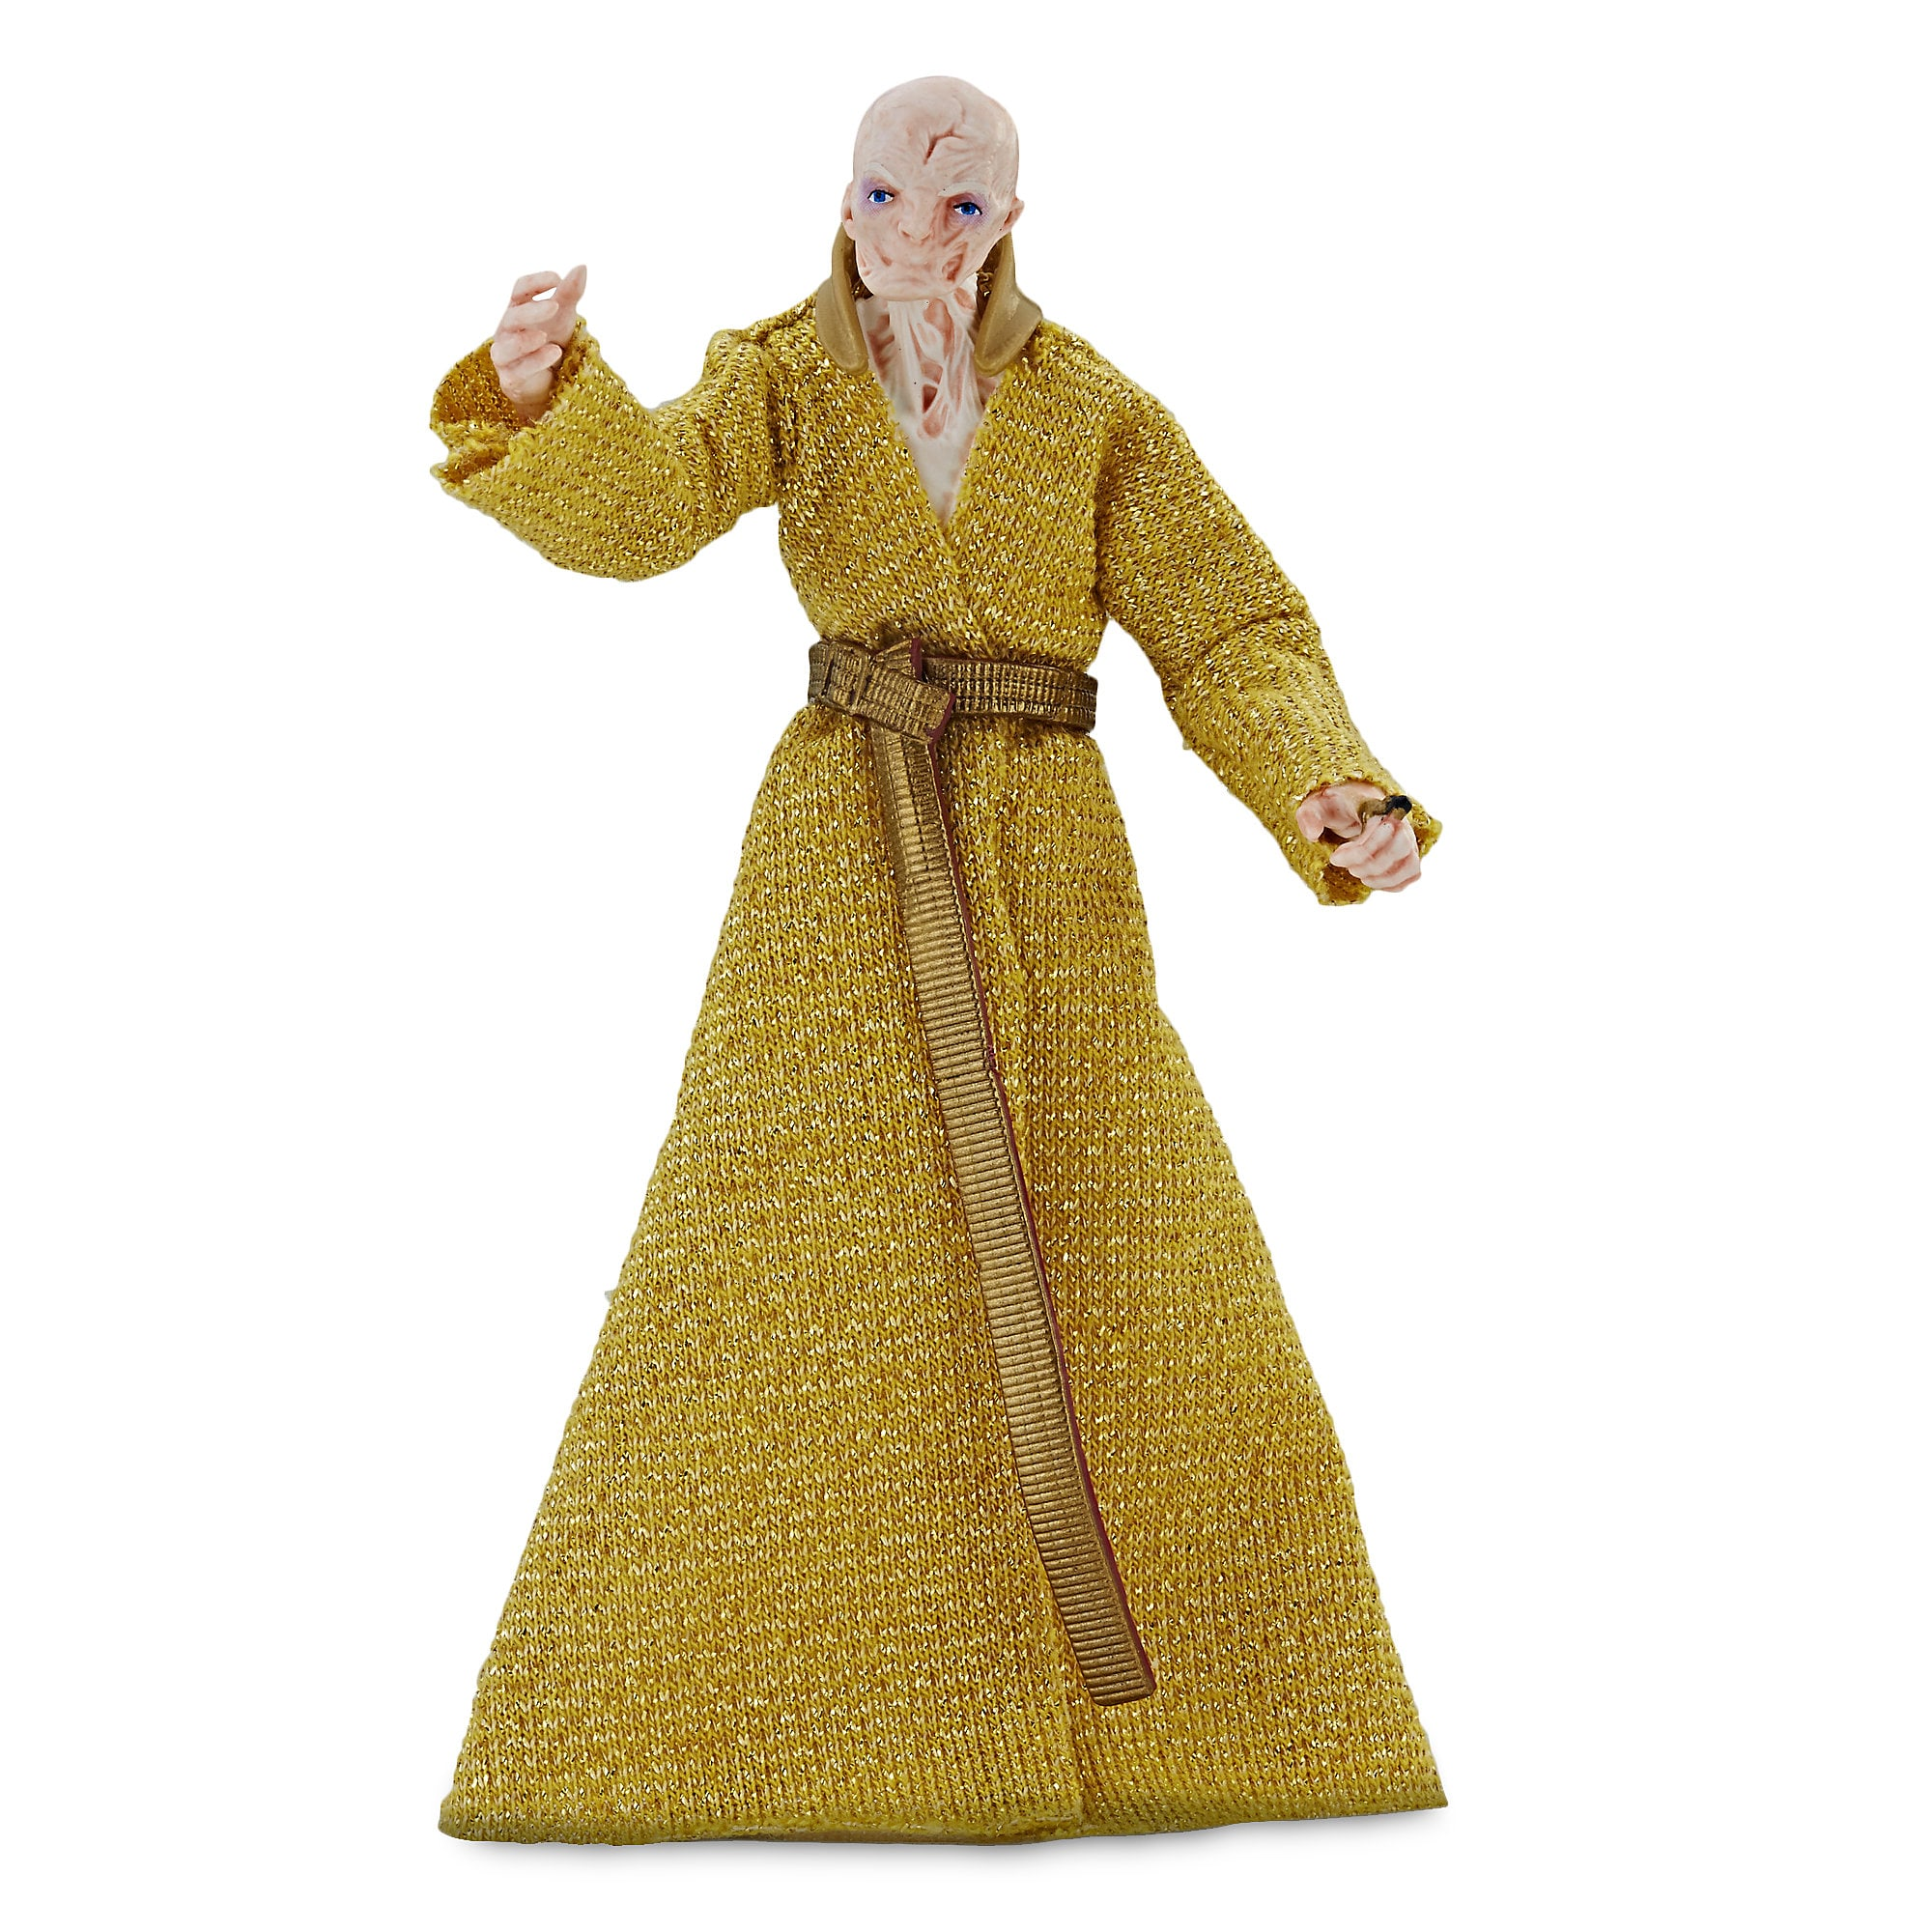 Supreme Leader Snoke Action Figure - Star Wars: The Vintage Collection by Hasbro